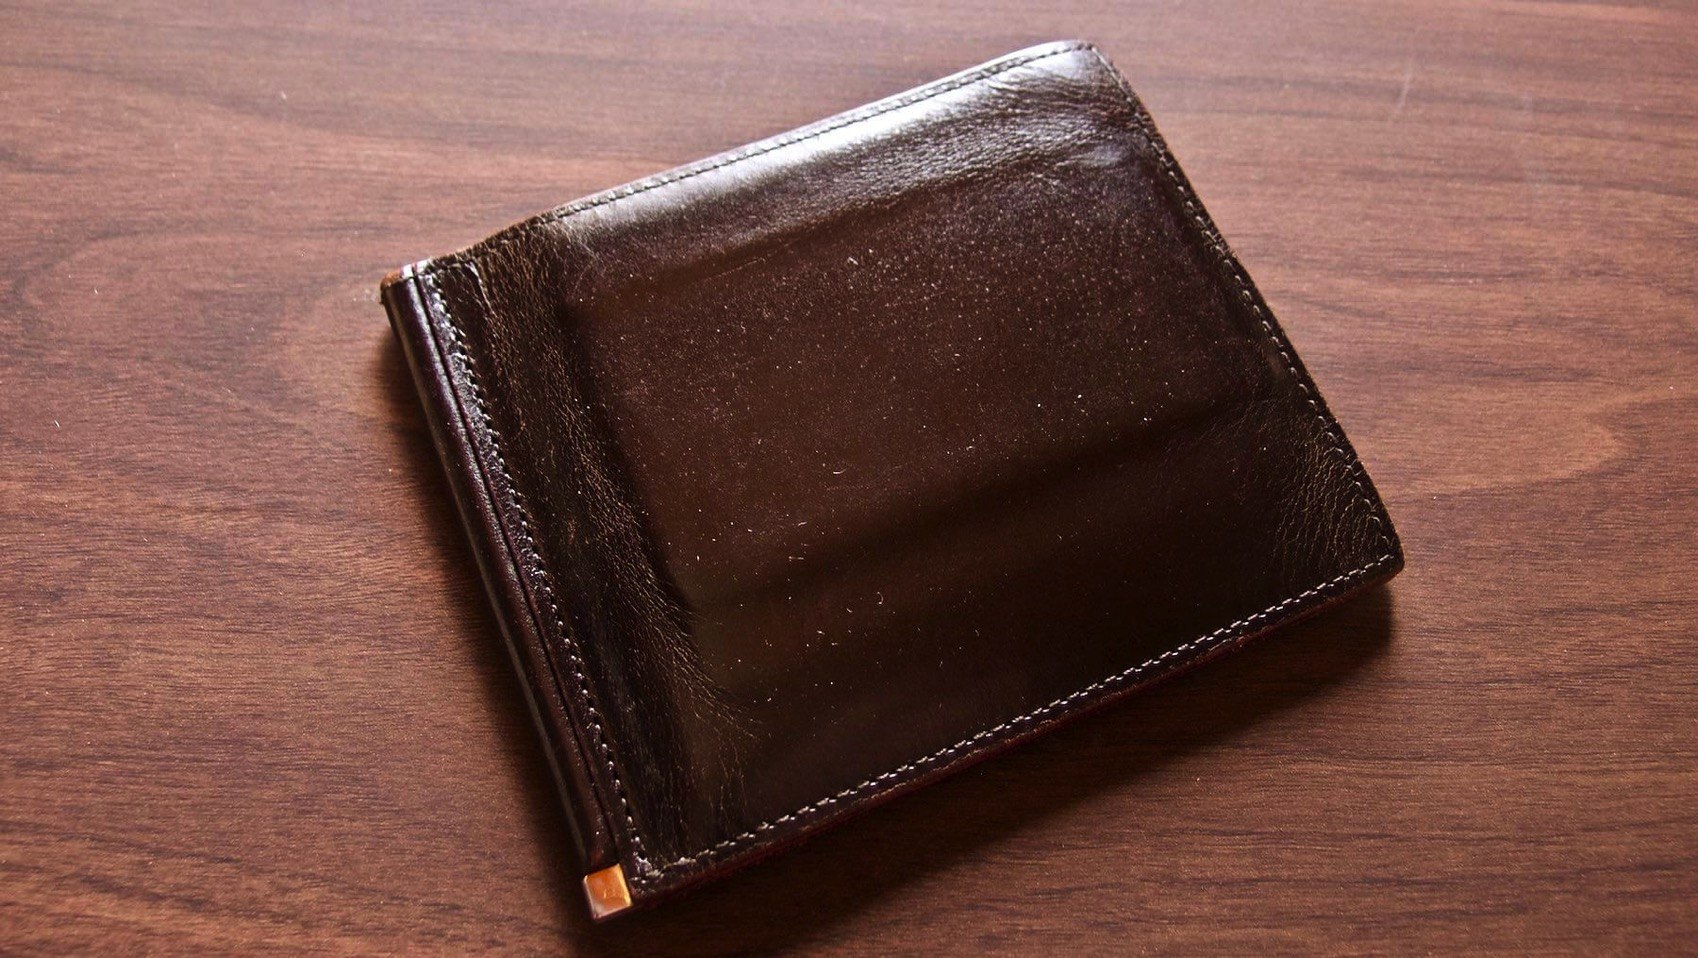 08 GANZO THIN BRIDLE Money clip Five year after aging